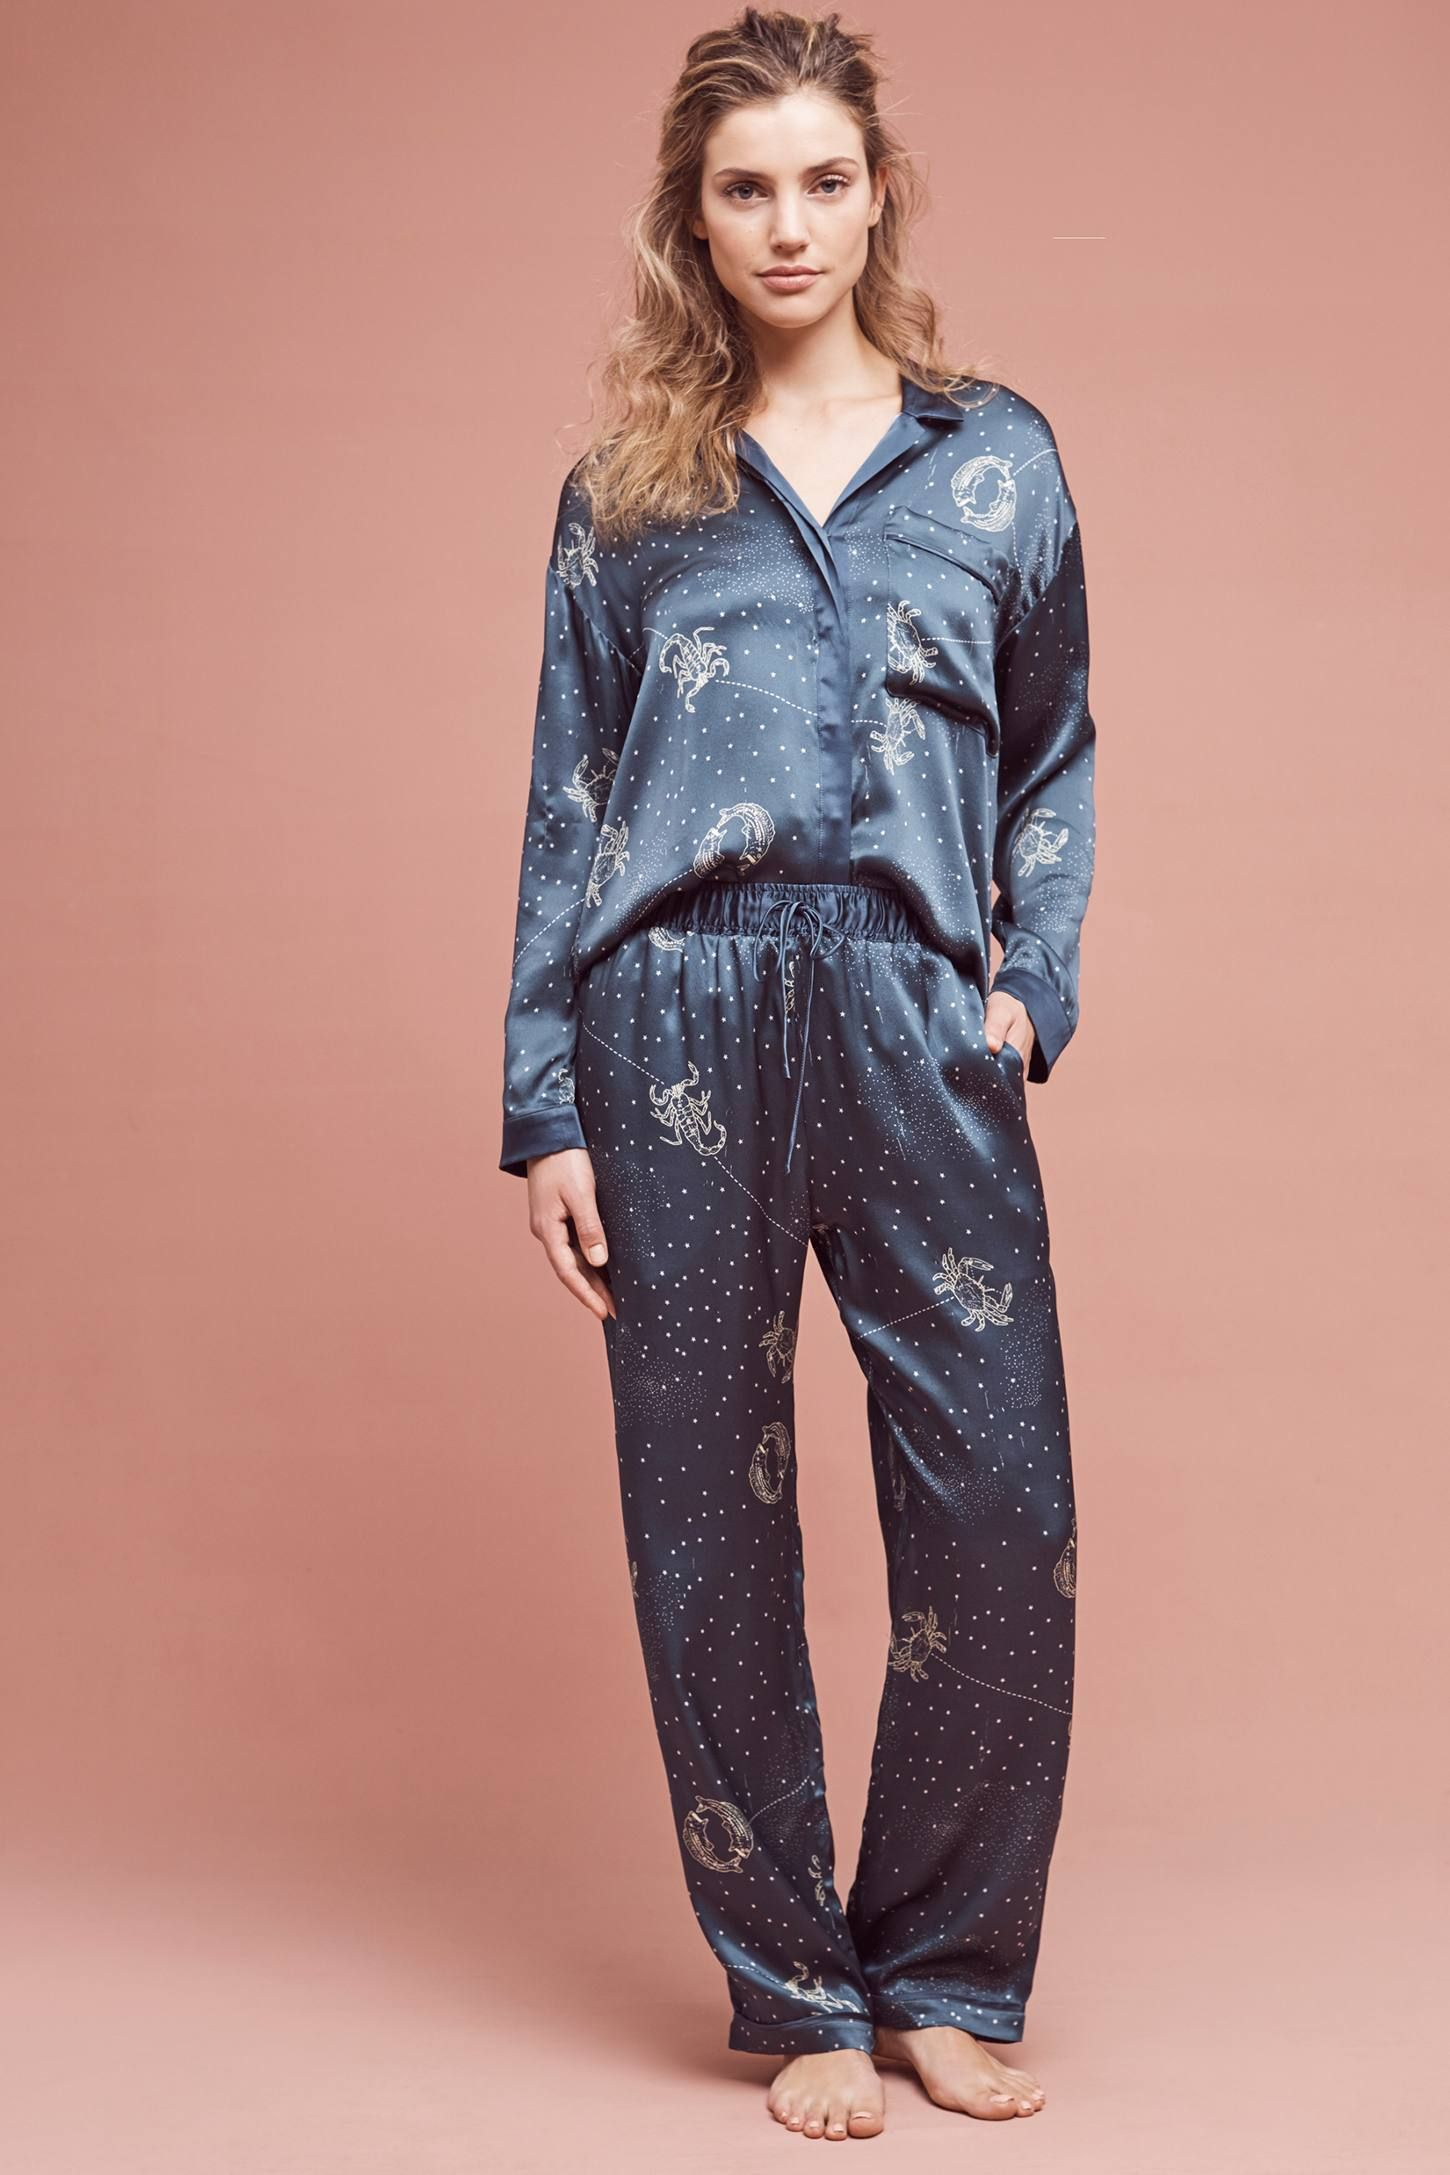 be9293c049 Slide View  1  Dear Bowie Astrology Pajama Set